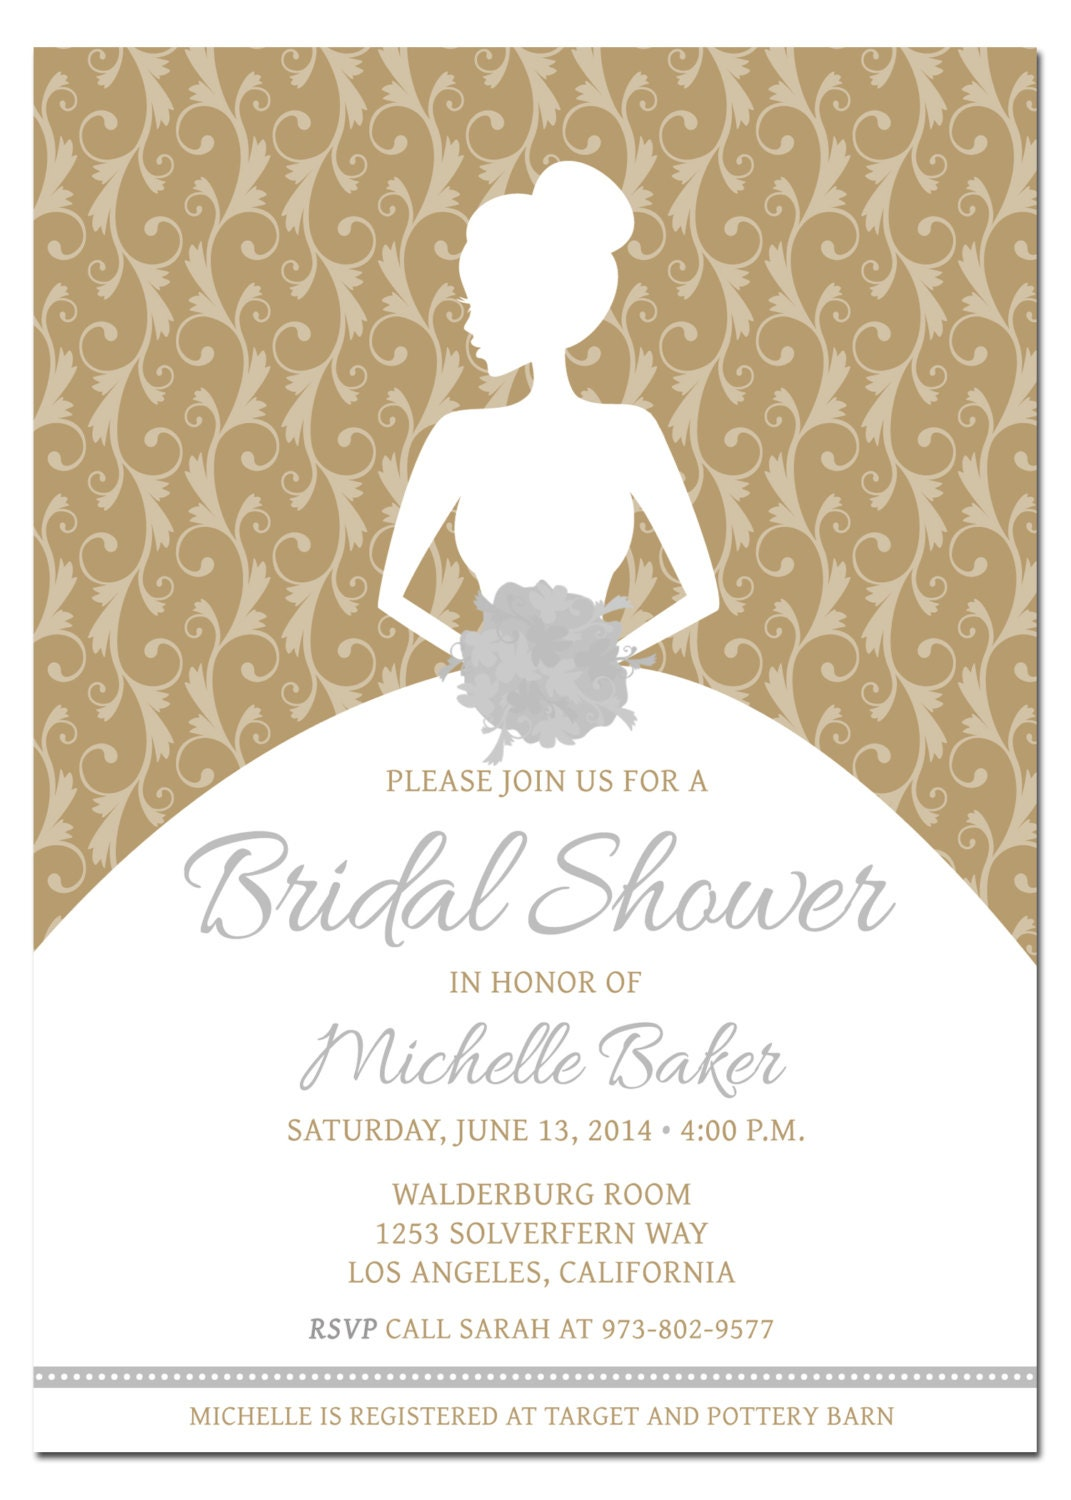 Tactueux image with printable bridal shower invitations